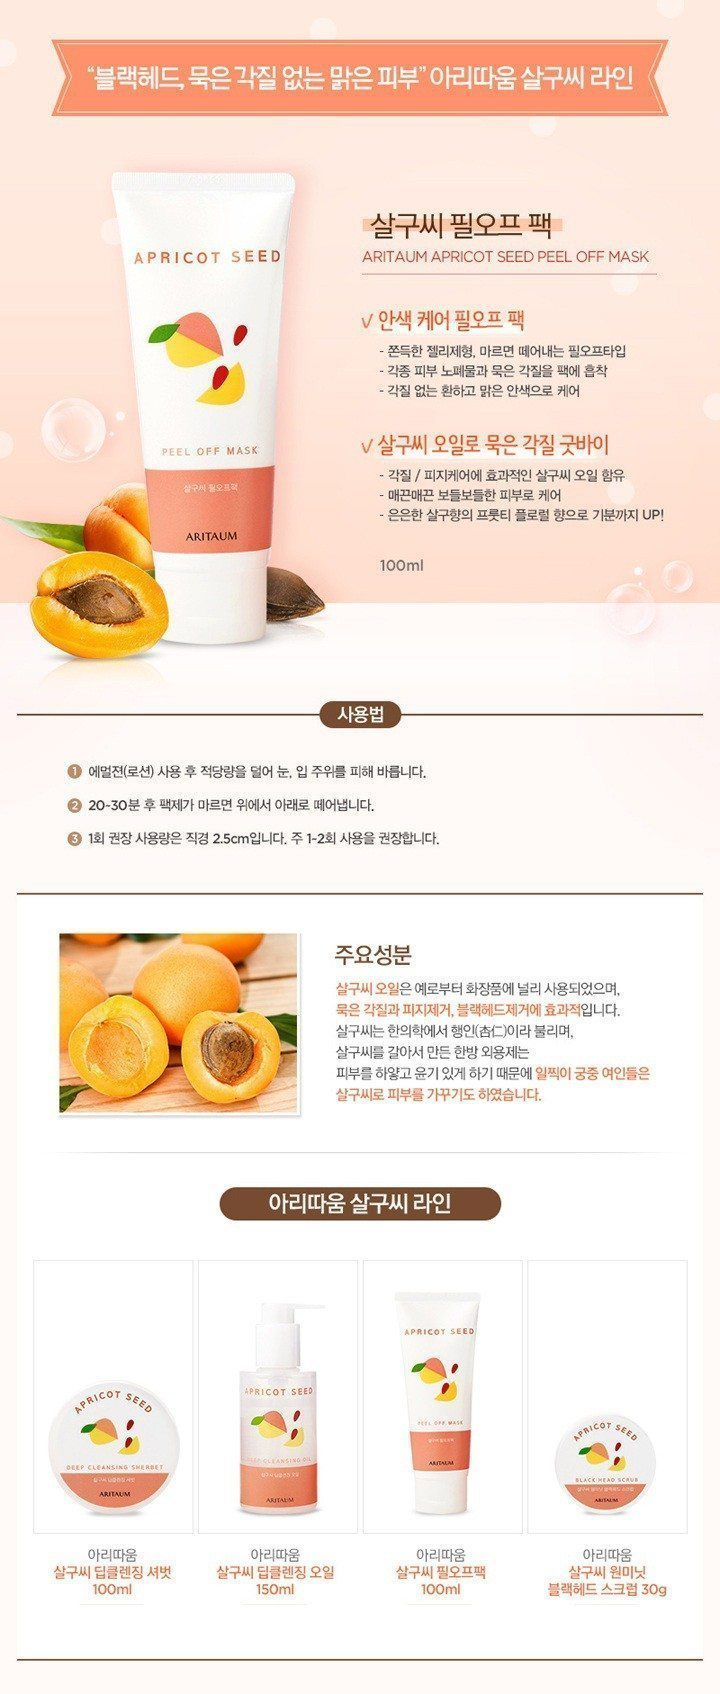 ARITAUM Apricot Seed Cleansing Peel-Off Mask 100ml